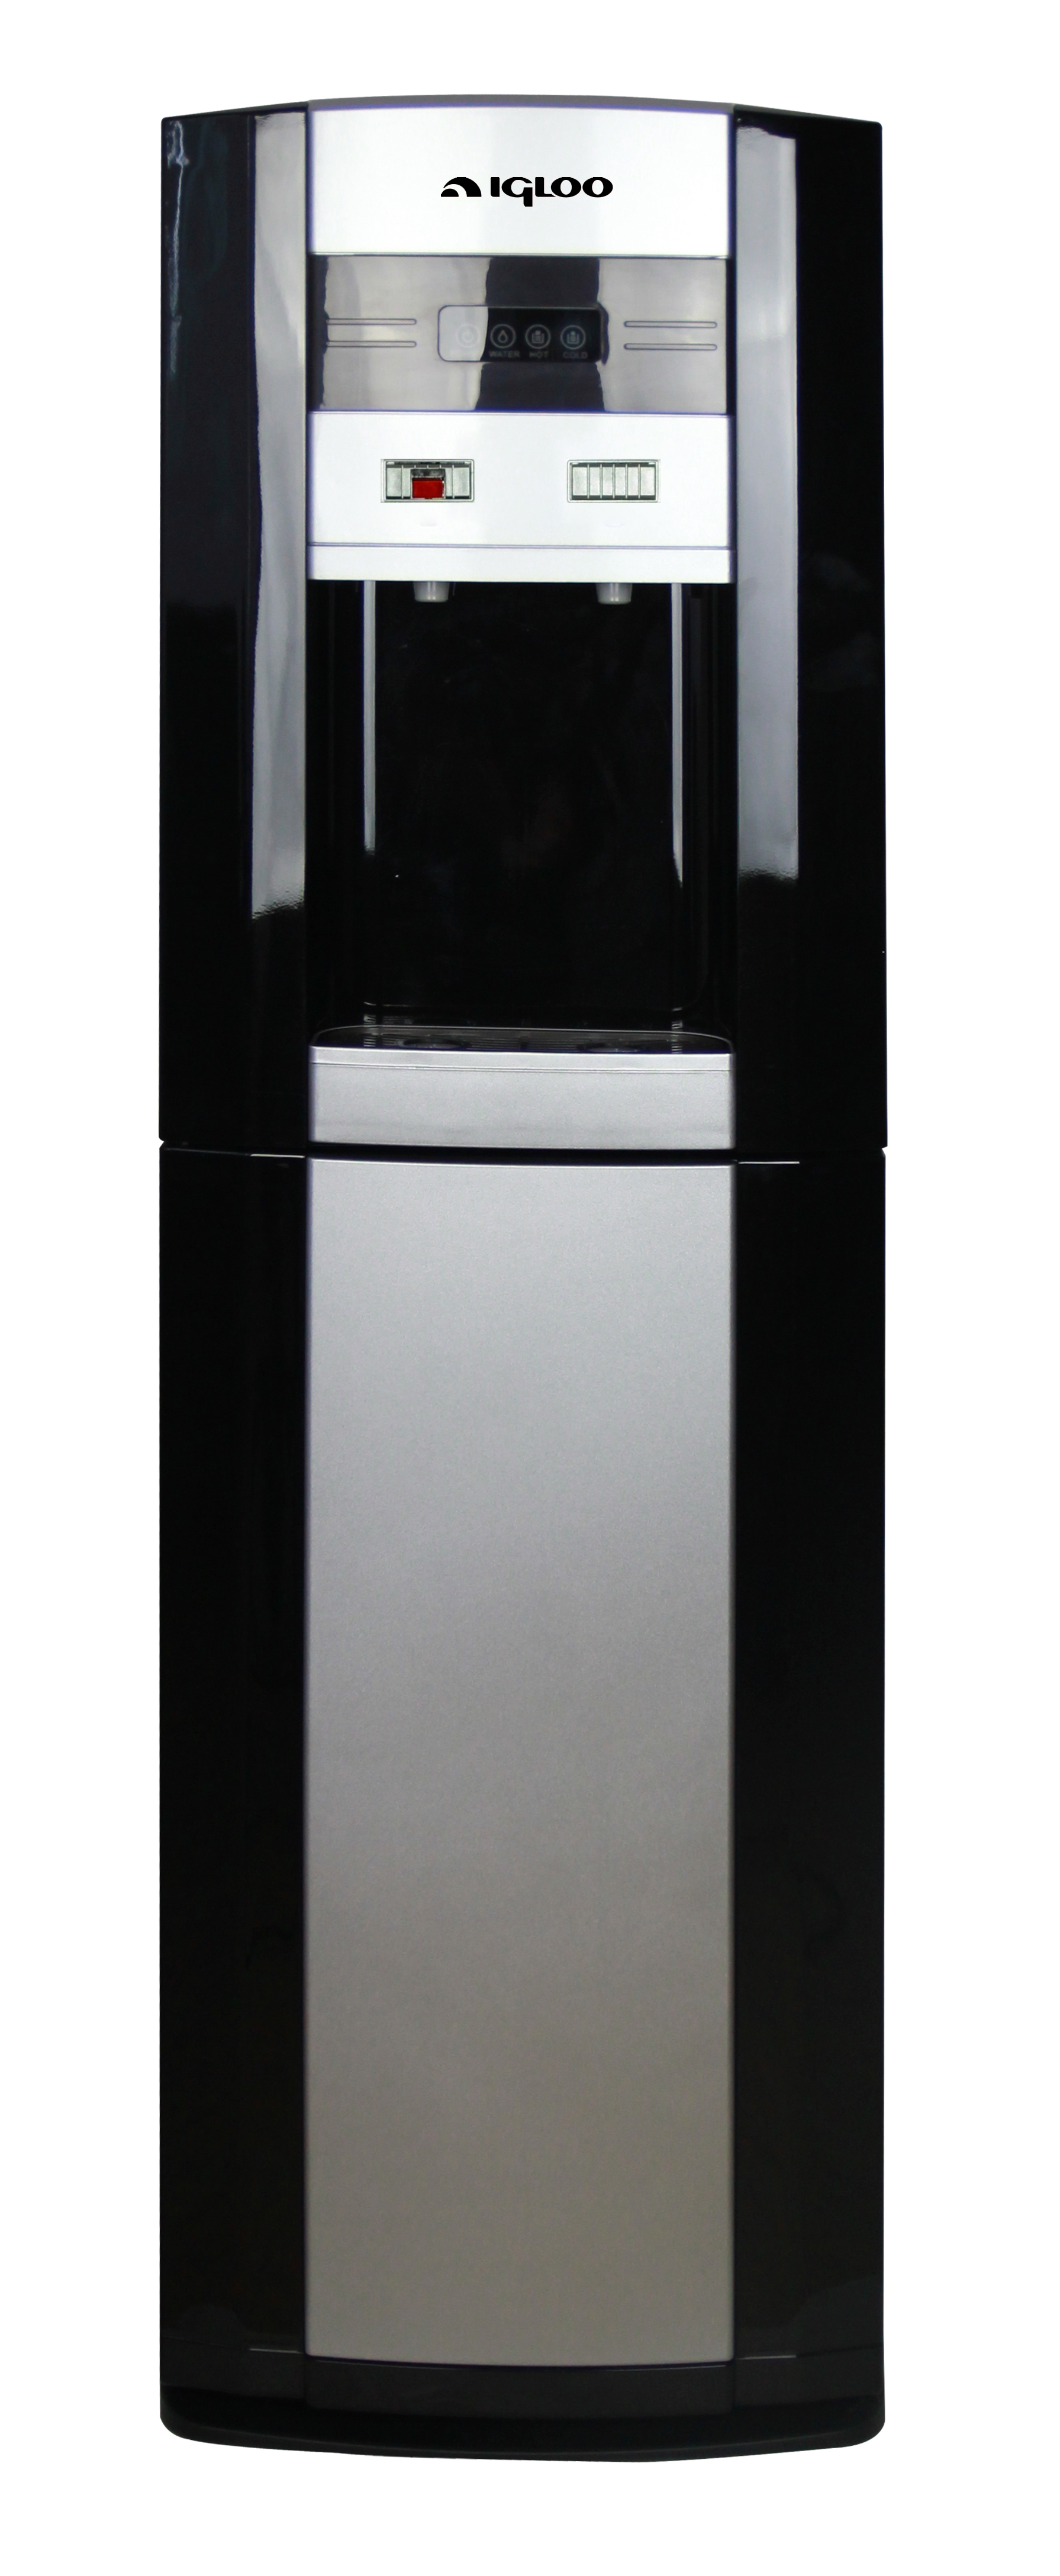 Hot And Cold Water Dispenser Walmart. Indulge Fhc2200 Double Handle Hotcold Water Dispenser ...